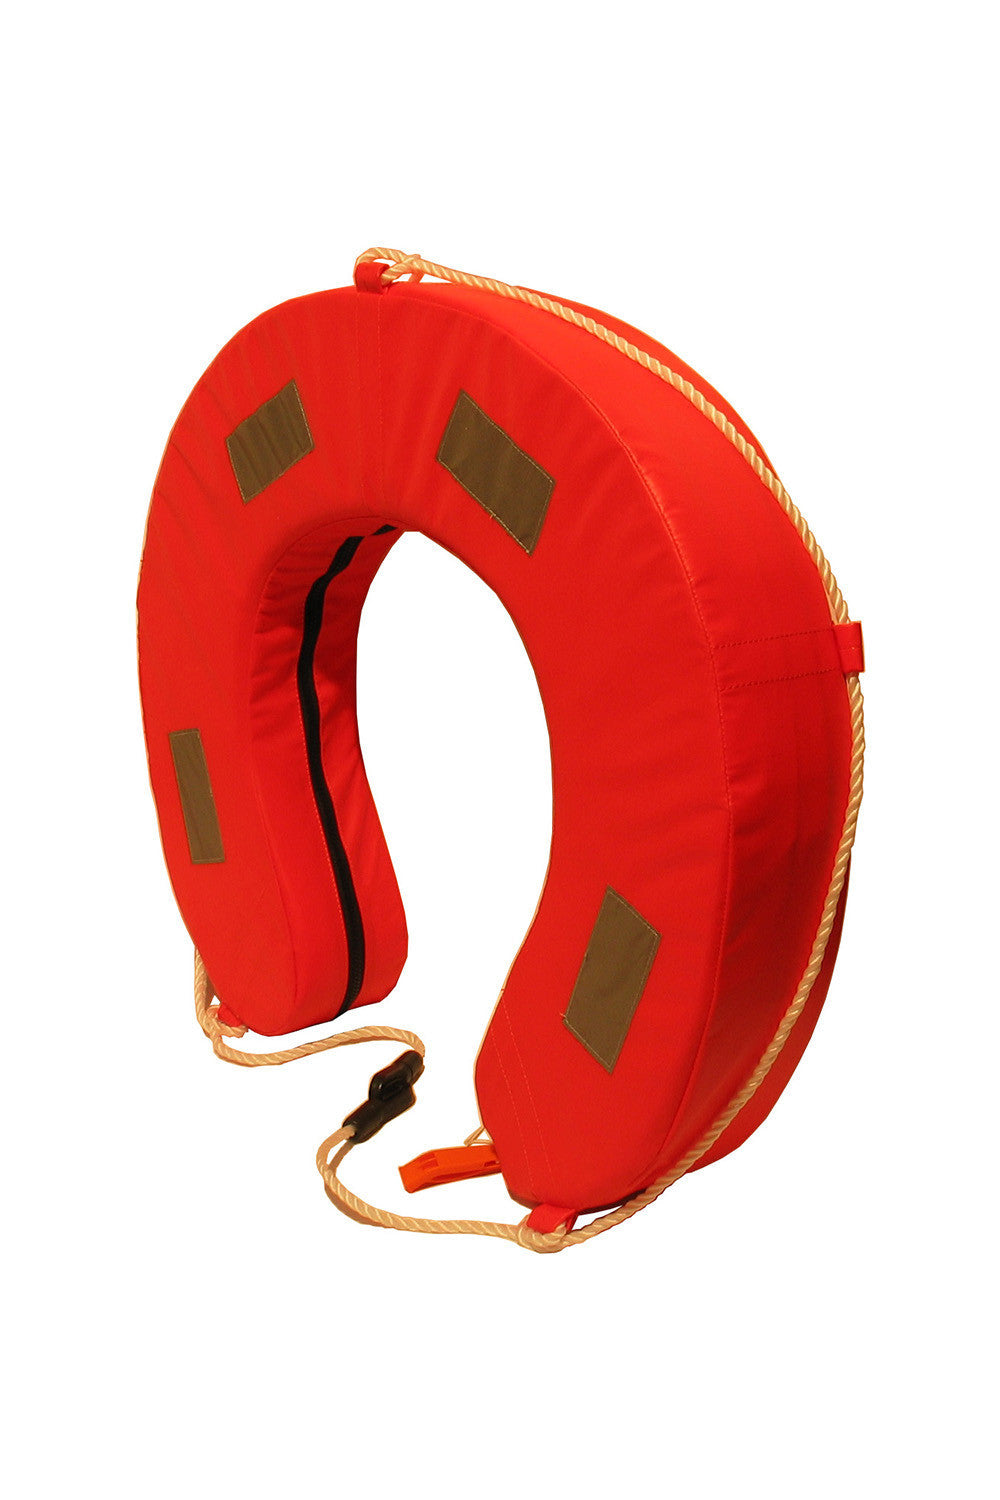 Burke Horseshoe Lifebuoy - YA Orange - LIF220YA